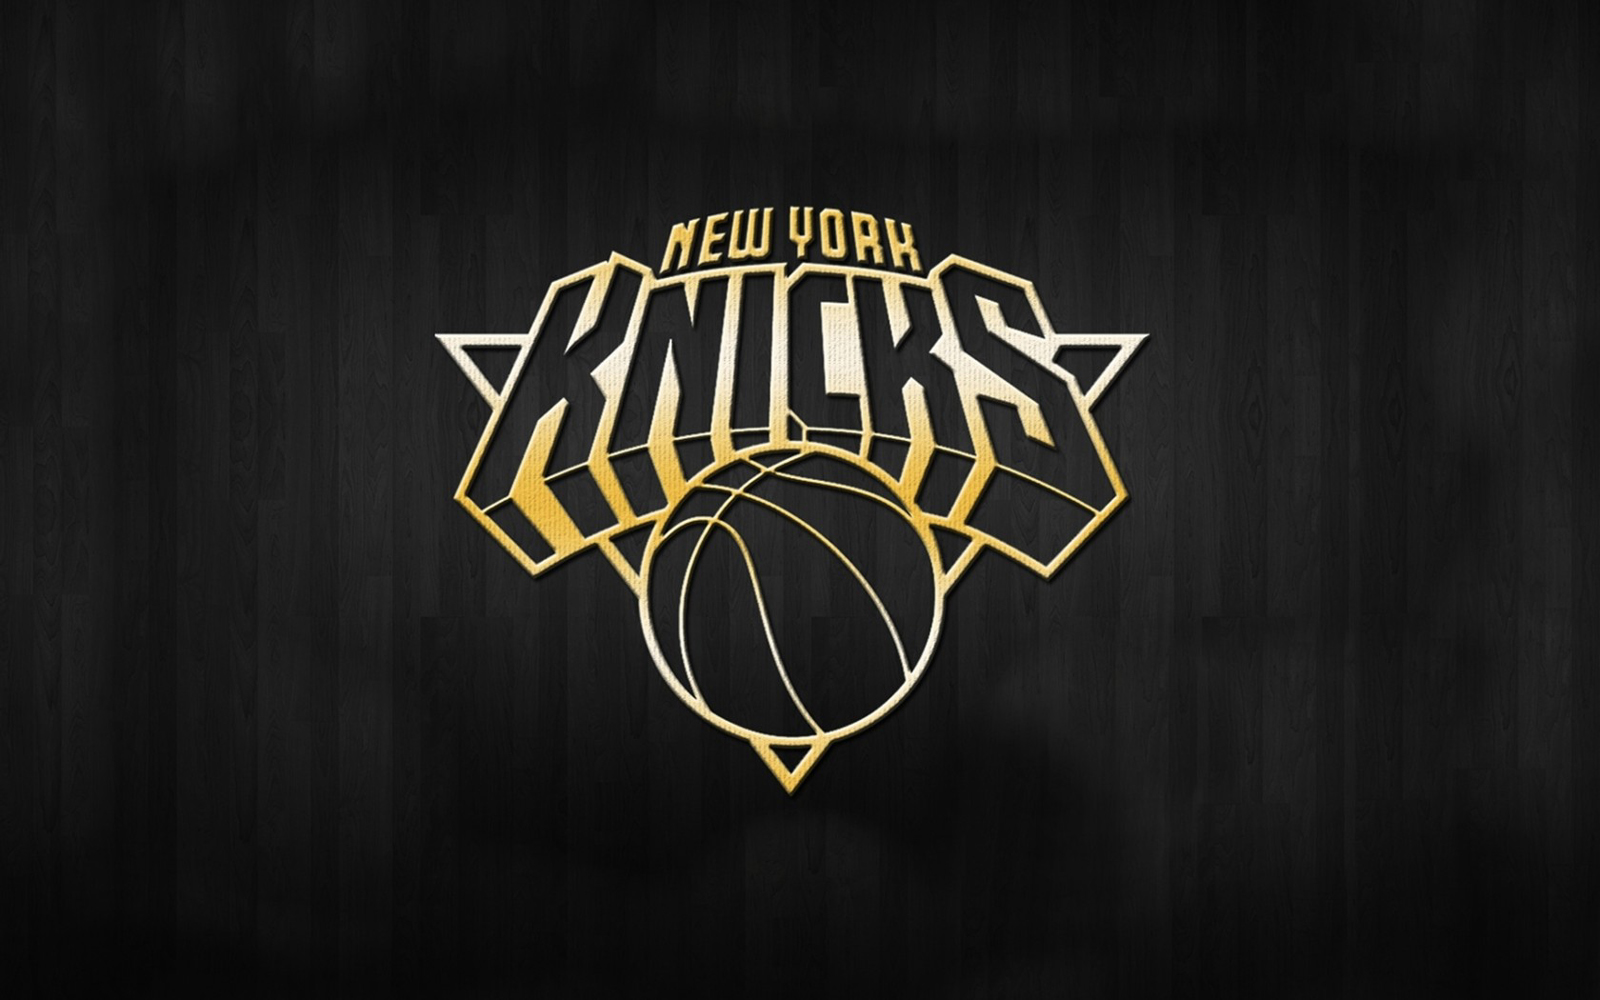 http://1.bp.blogspot.com/-Tejy4rvg-mw/UPQ3wt68piI/AAAAAAAAJ24/_DkEabmo0r4/s1600/New_York_Knicks_2013_Logo_NBA_USA_Hd_Desktop_Wallpaper_citiesandteams.blogspot.com.jpg